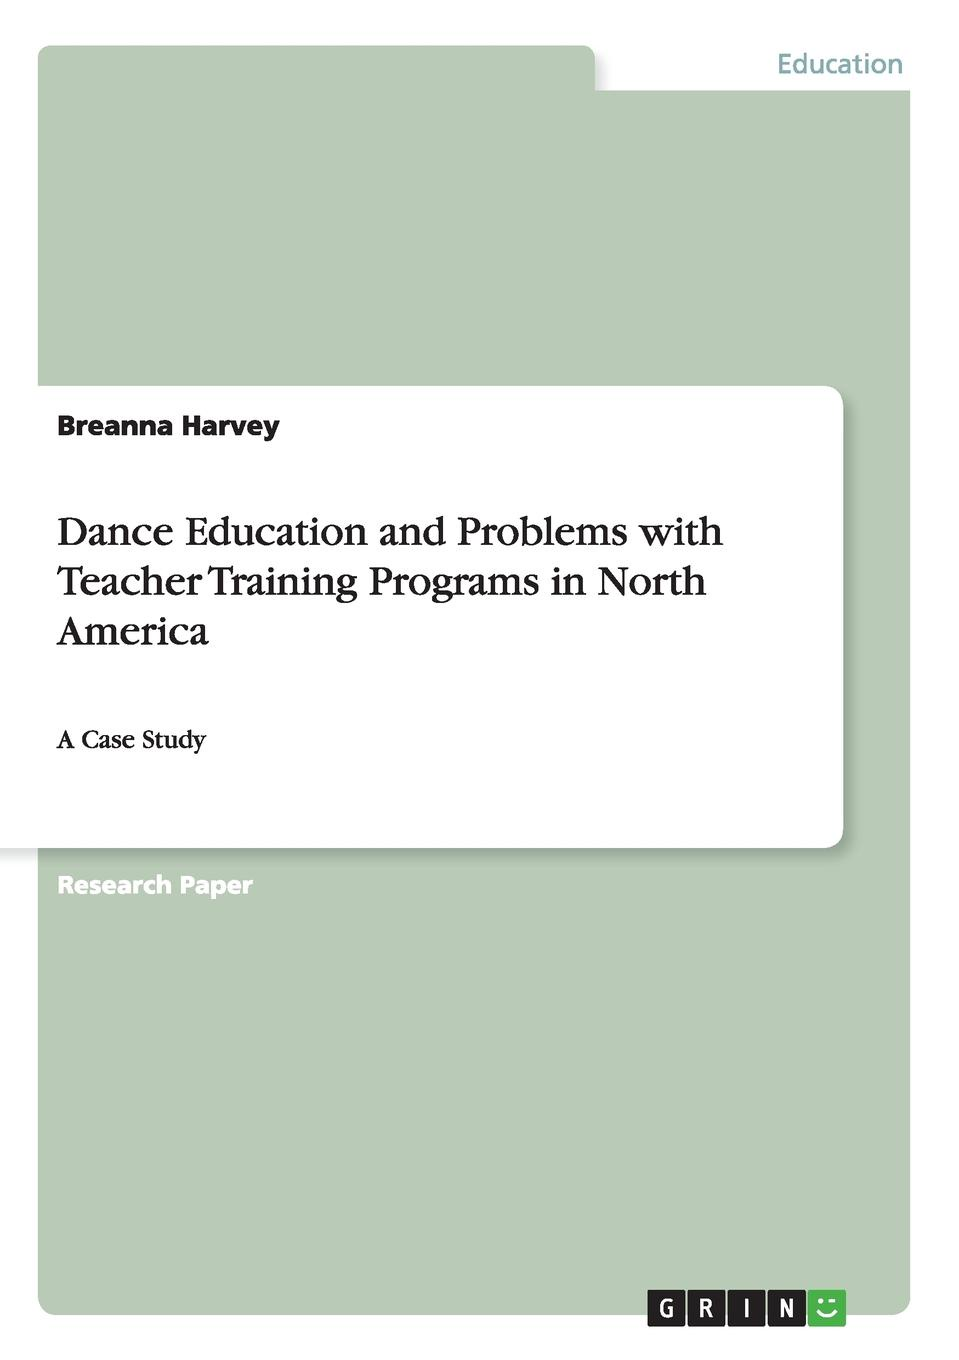 Breanna Harvey Dance Education and Problems with Teacher Training Programs in North America innovative reflections of teacher training programmes